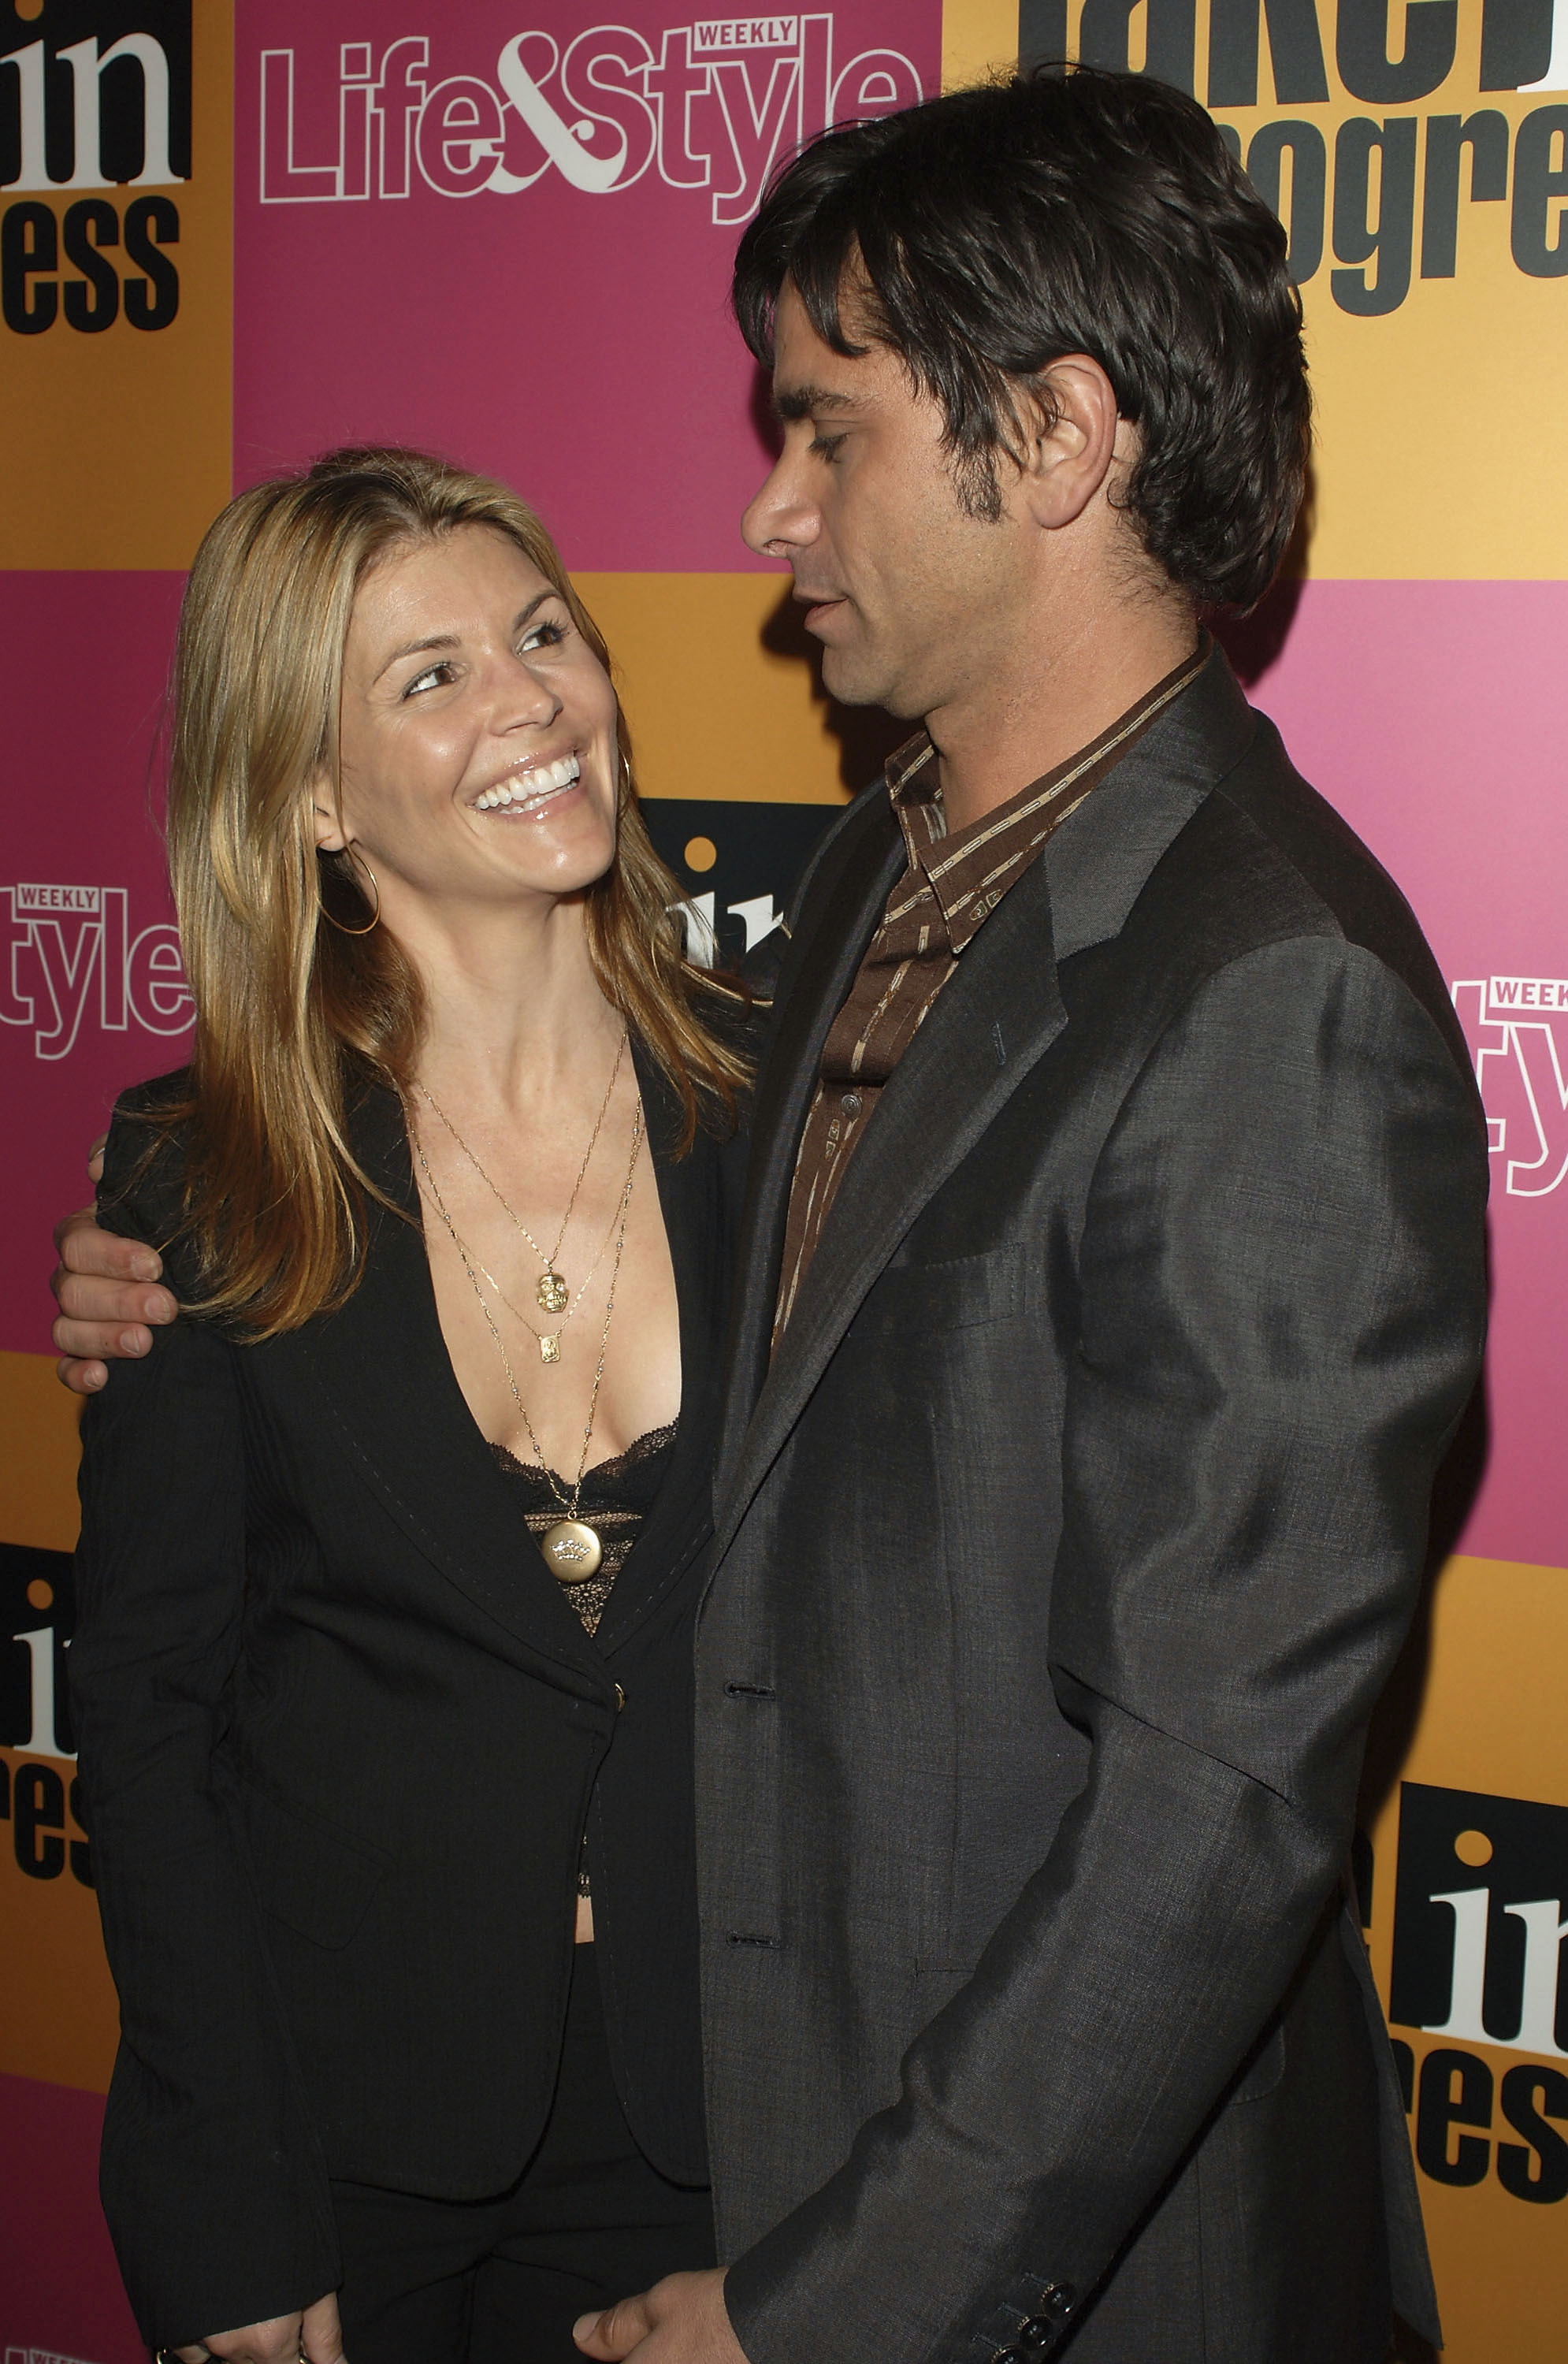 Who is john stamos currently dating